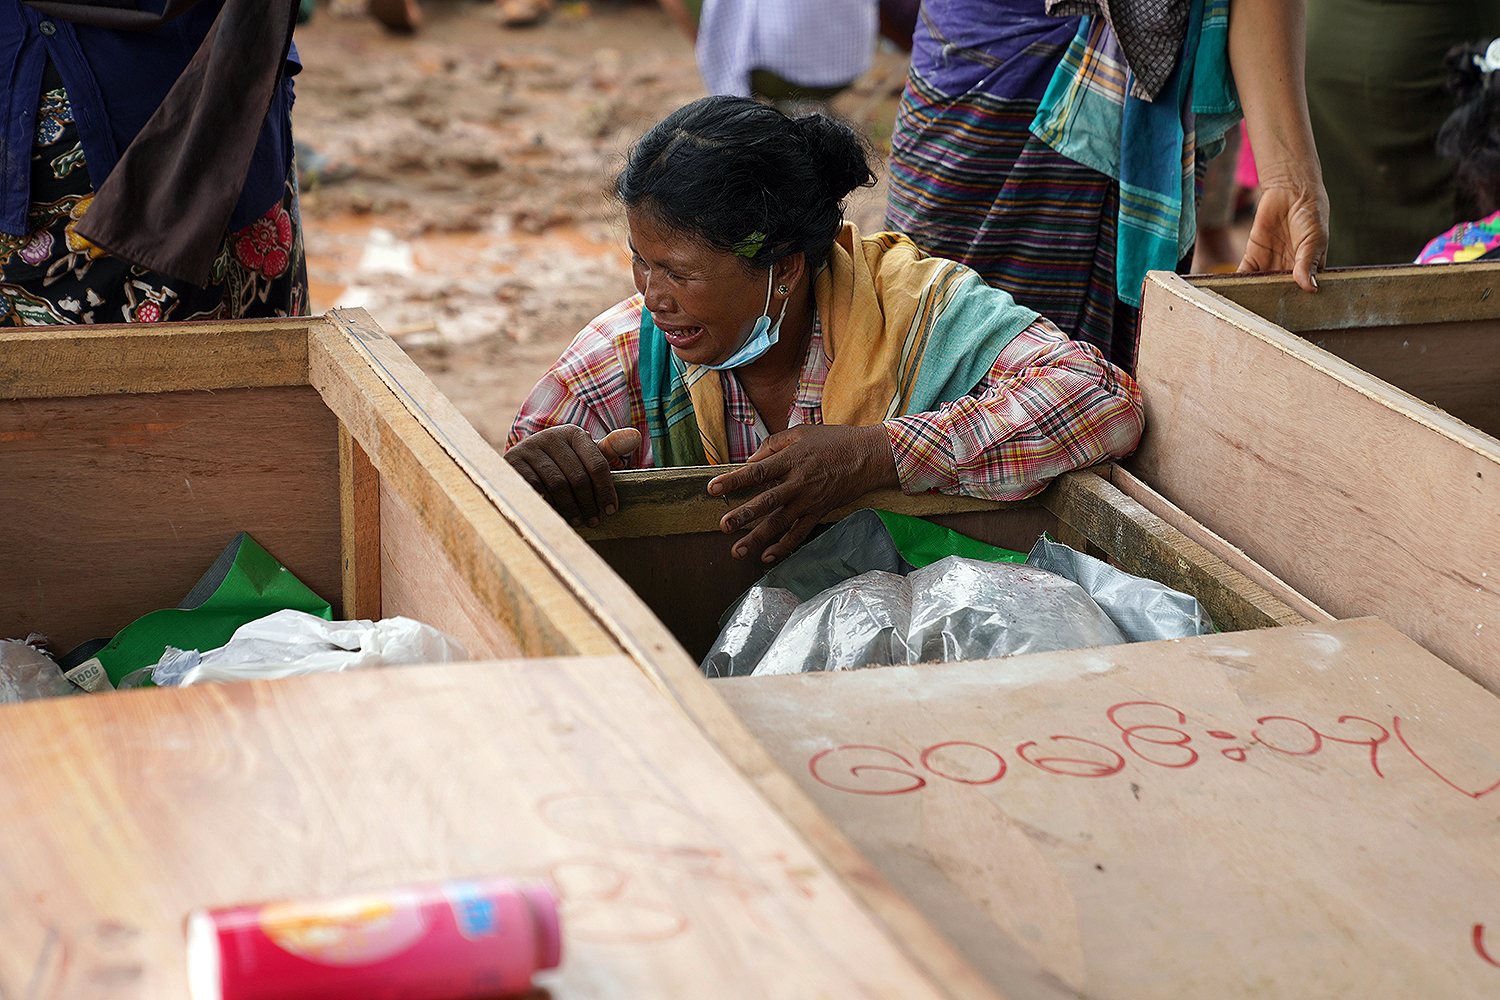 A woman grieves over the body of a miner during a funeral ceremony near Hpakant in Kachin state, Myanmar, on July 3. More than 160 people were killed when torrential rains triggered a landslide at a jade mining site in northern Myanmar. ZAW MOE HTET/AFP via Getty Images